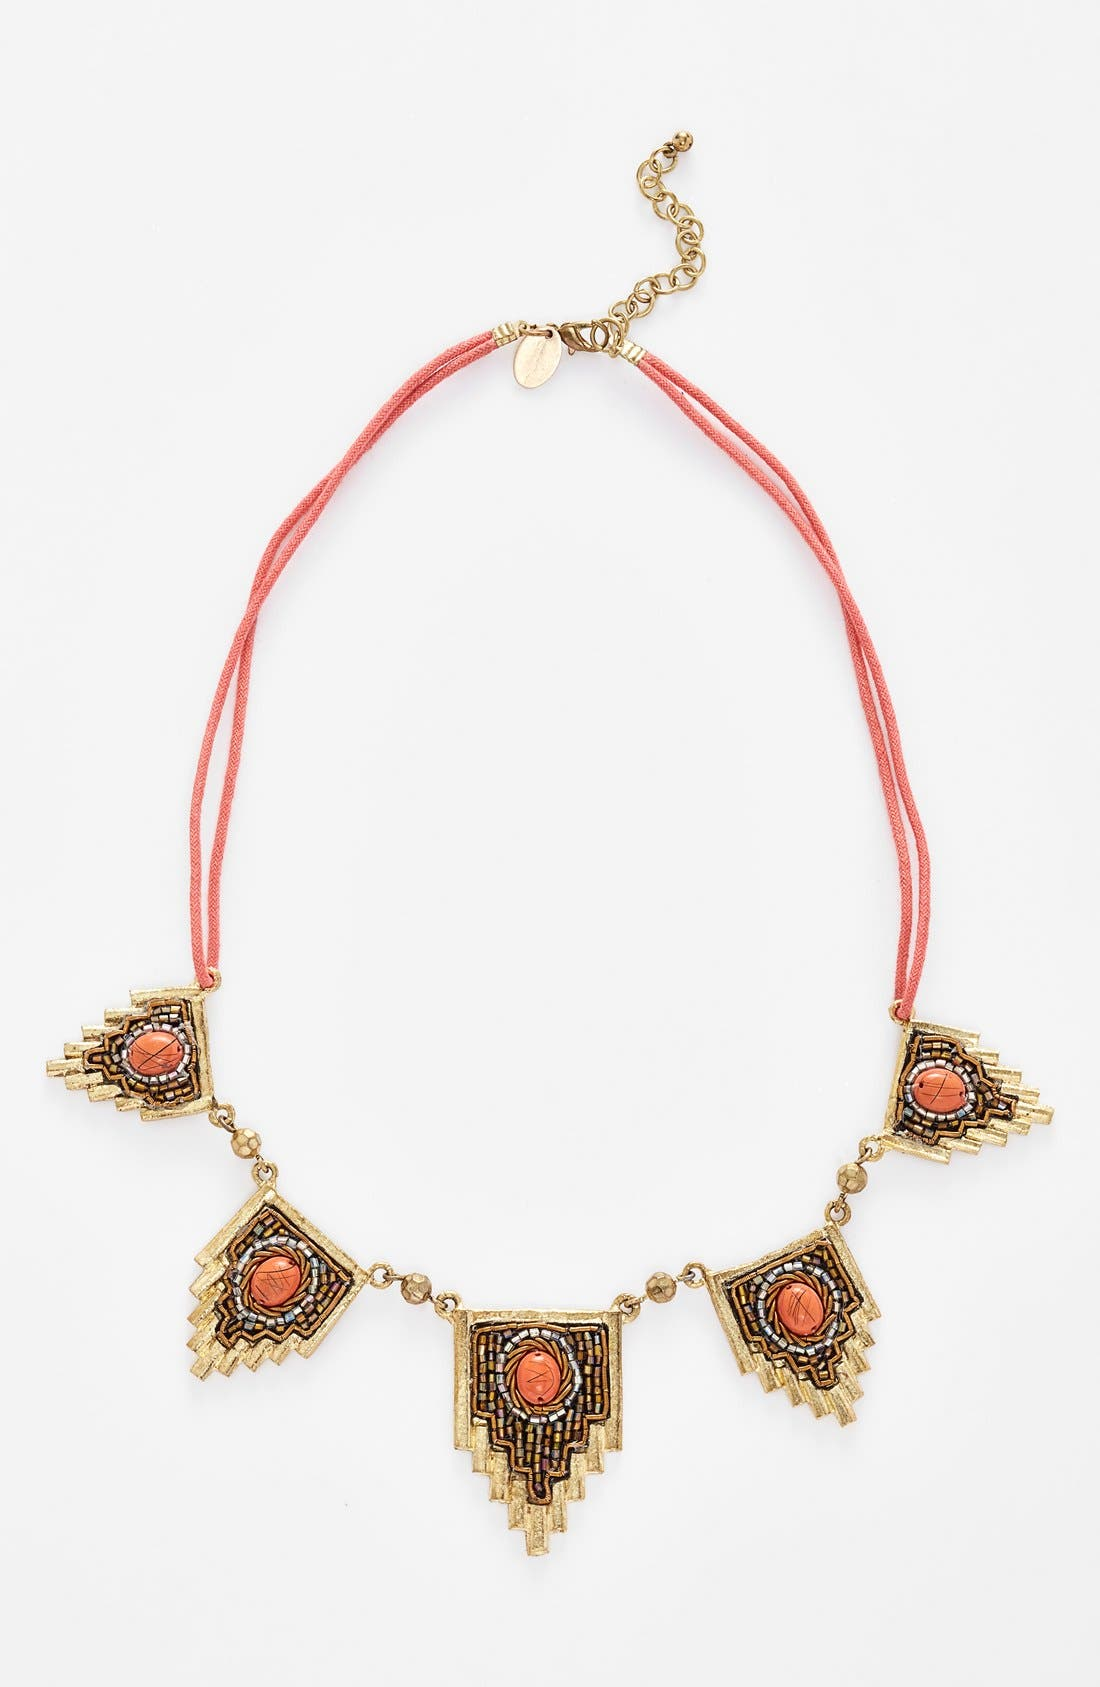 Alternate Image 1 Selected - Berry 'Egyptian' Beaded Statement Necklace